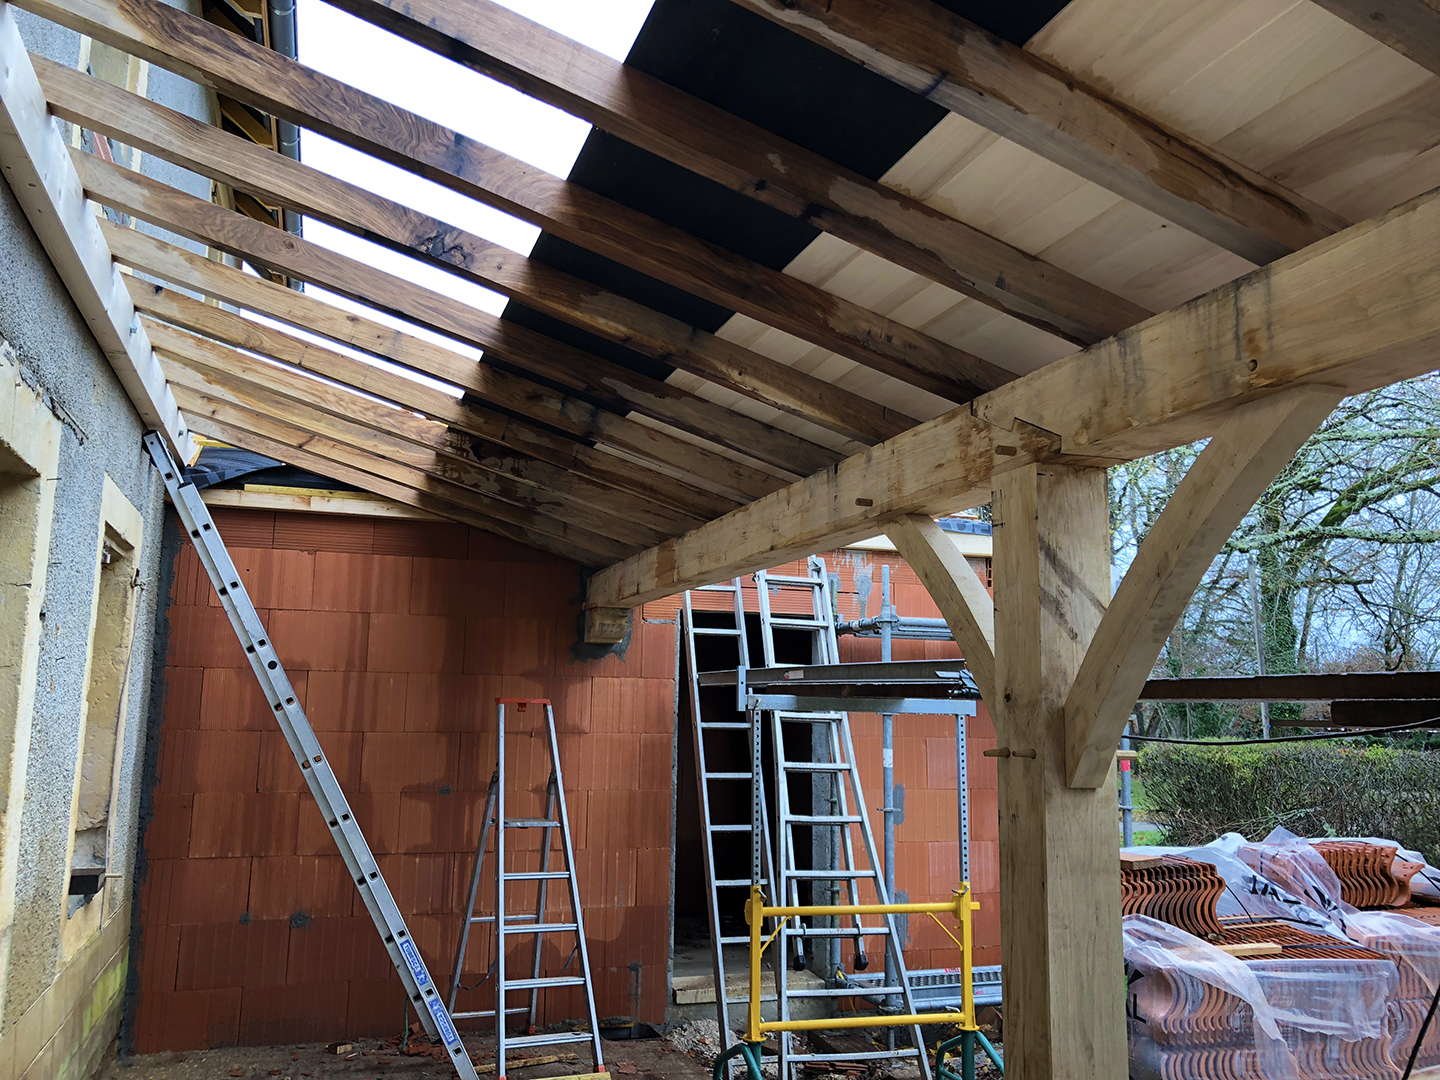 Oak rafters and poplar planks